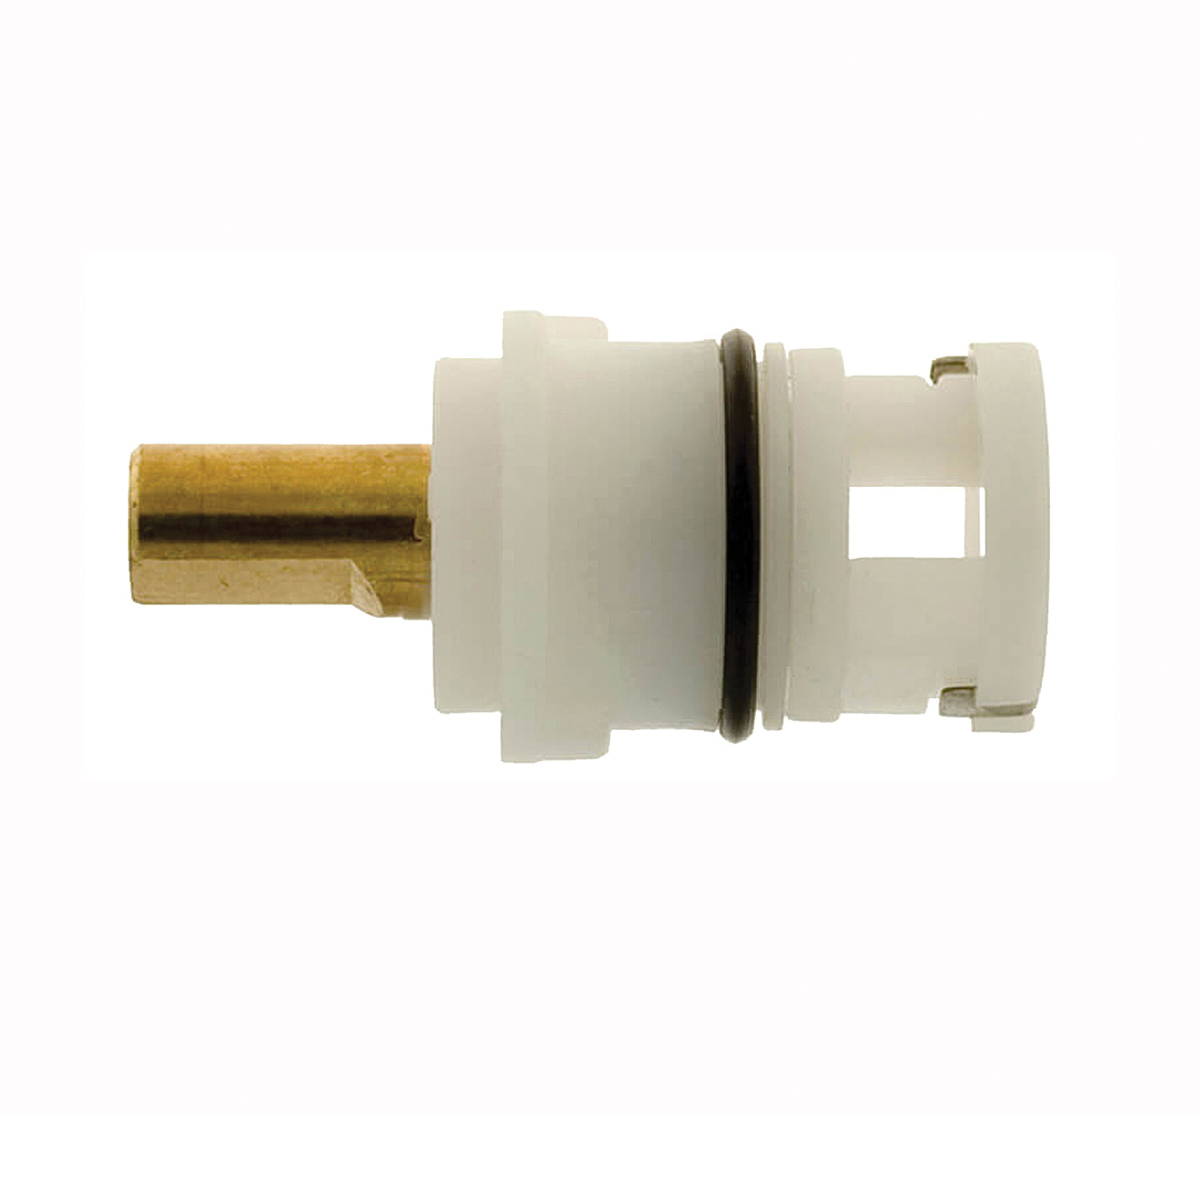 Picture of Danco 09325B Faucet Stem, Plastic, 1-57/64 in L, For: Delta Two-Handle Faucets